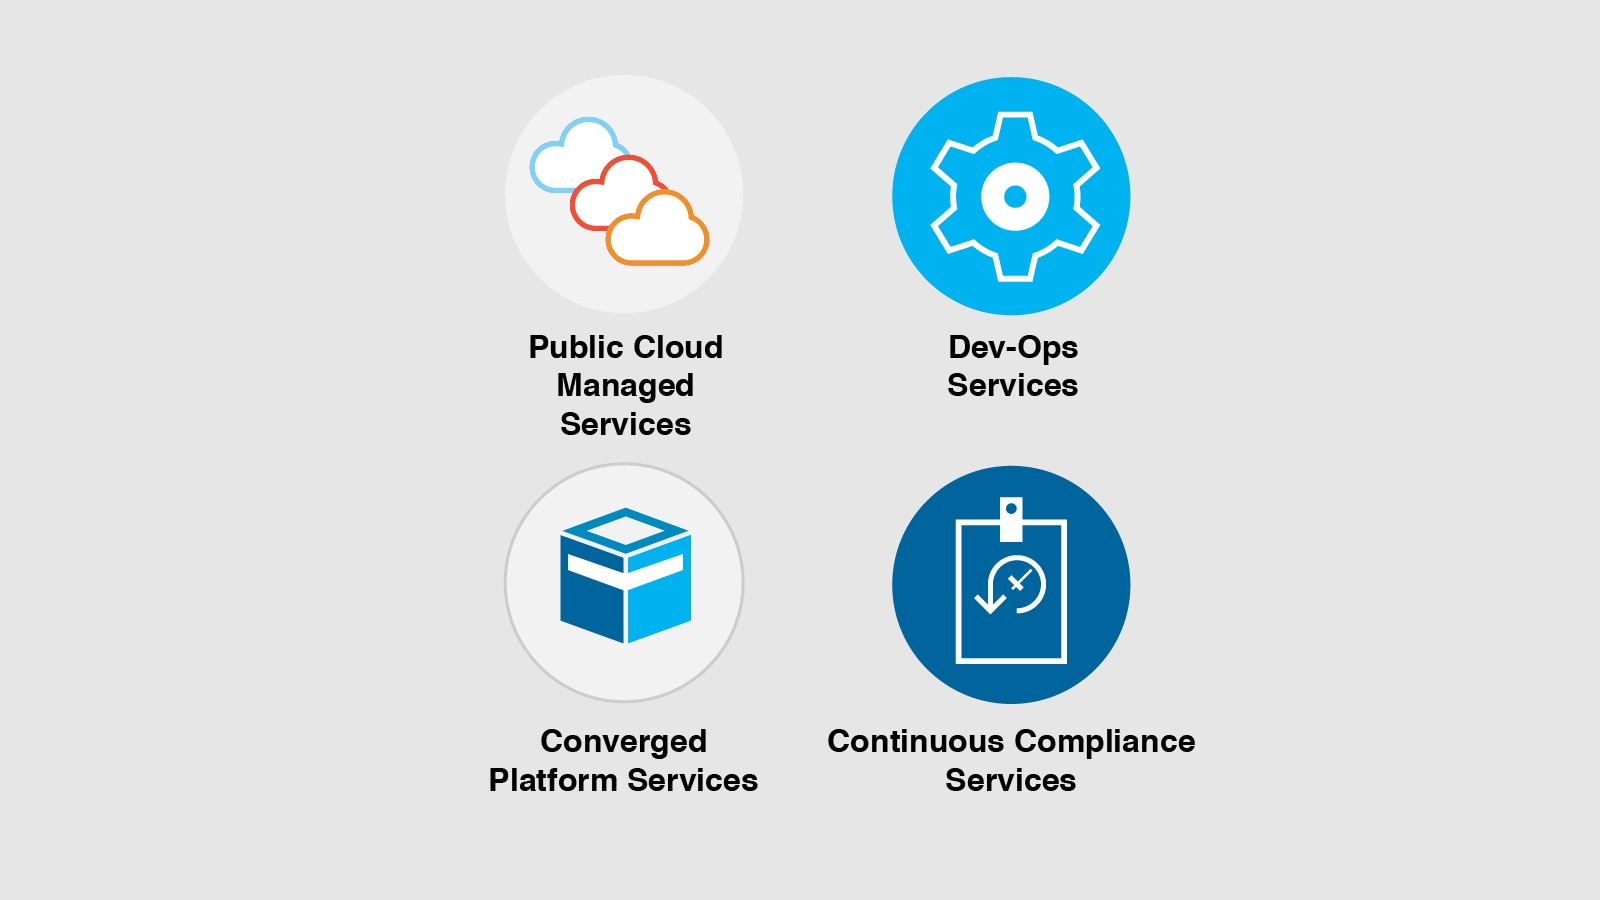 Public Cloud Managed Services and more